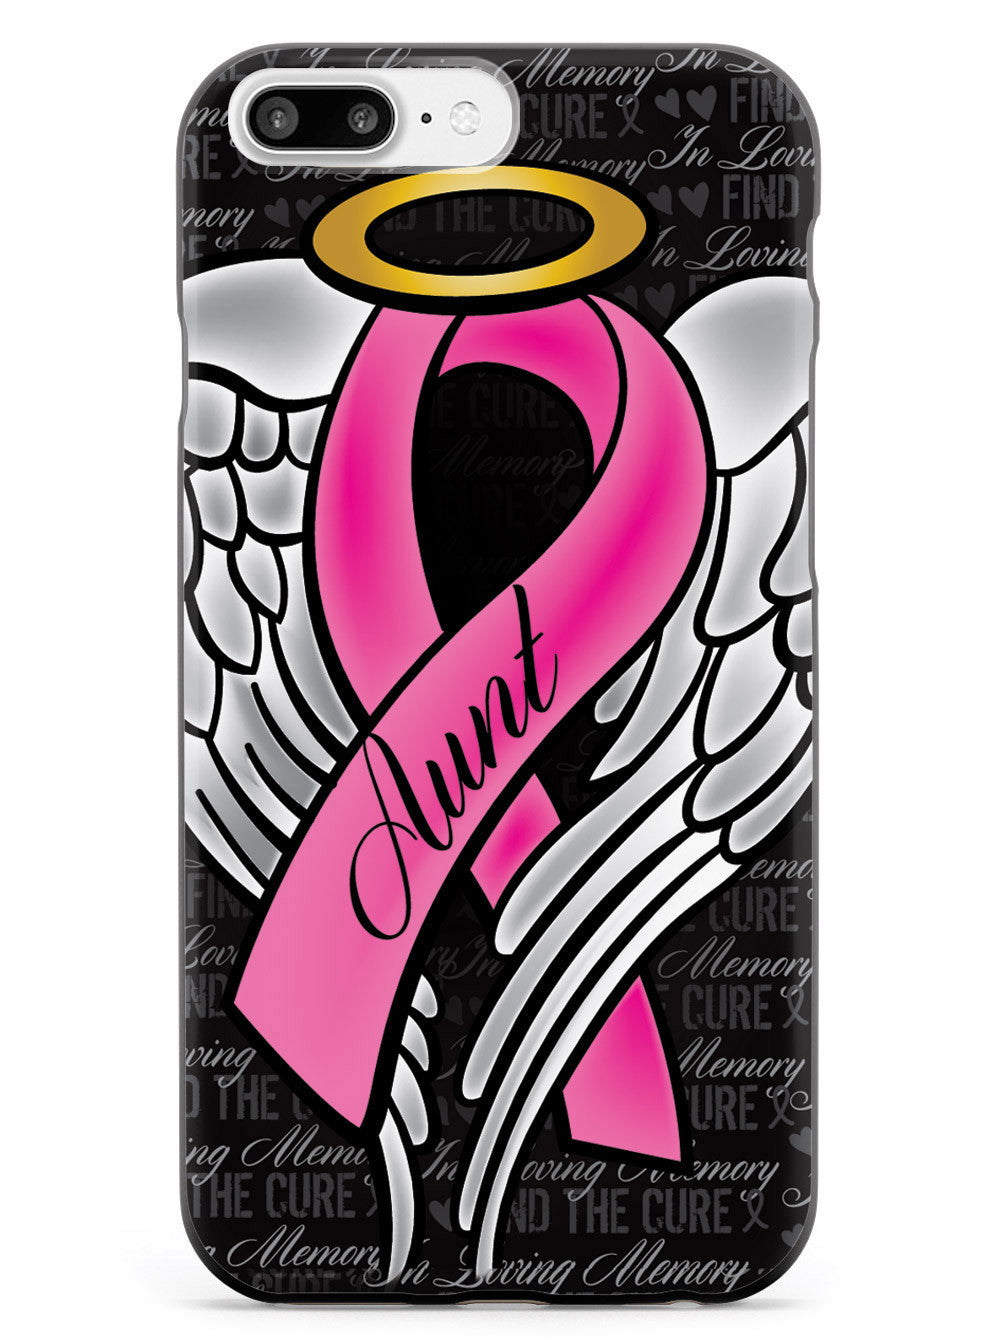 In Loving Memory of My Aunt - Pink Ribbon Case